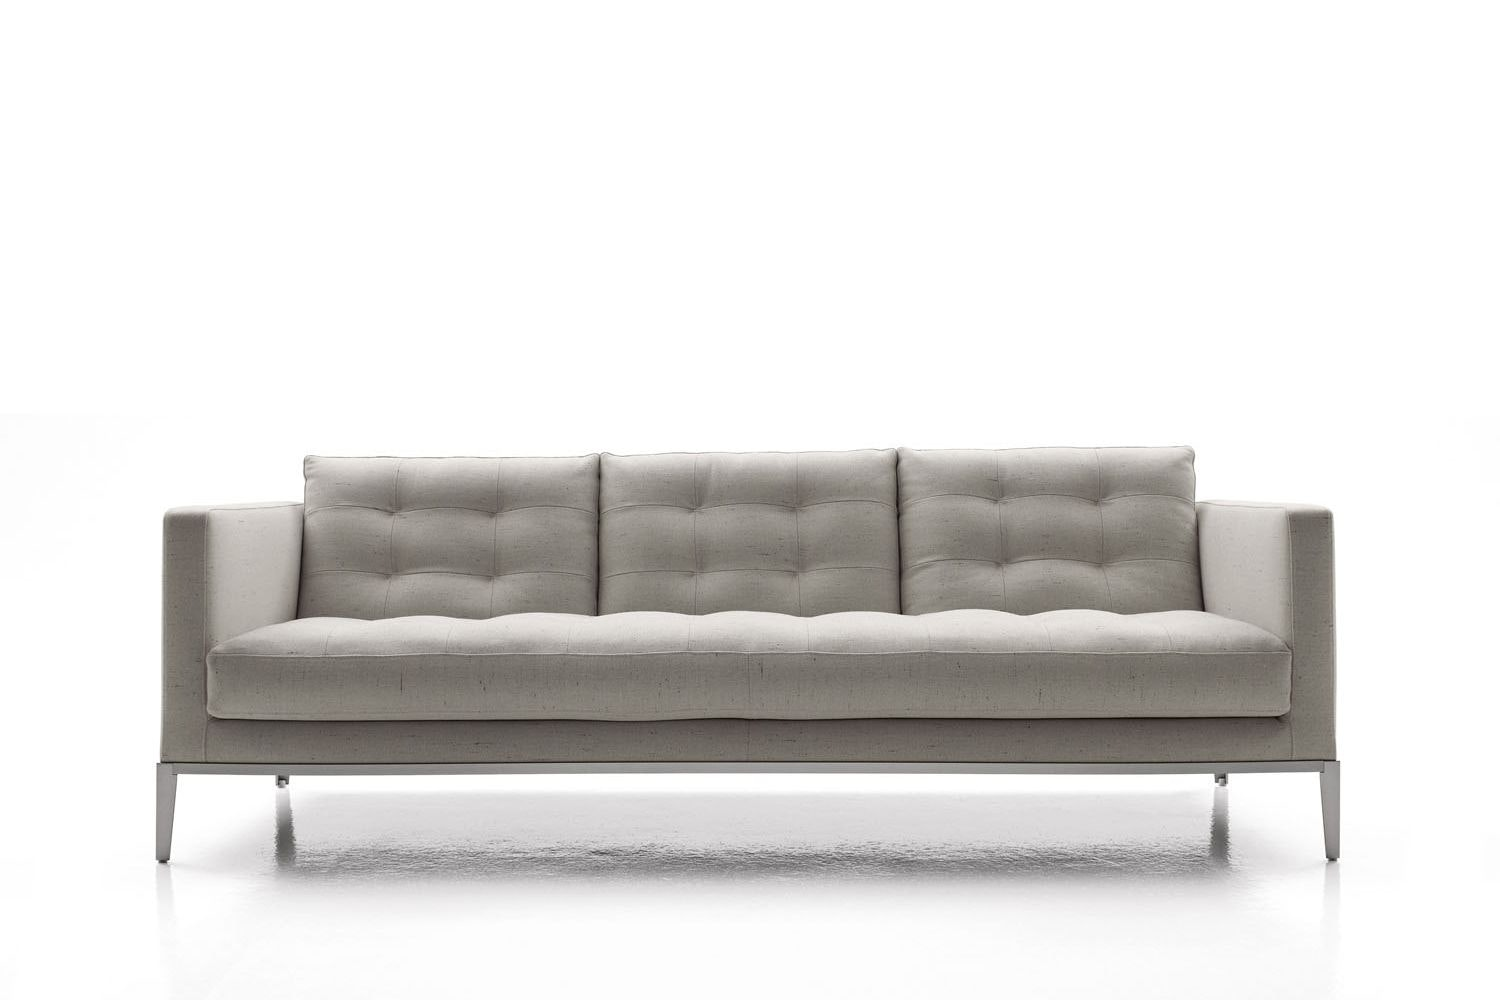 AC Lounge Sofa by Antonio Citterio for B&B Italia Project